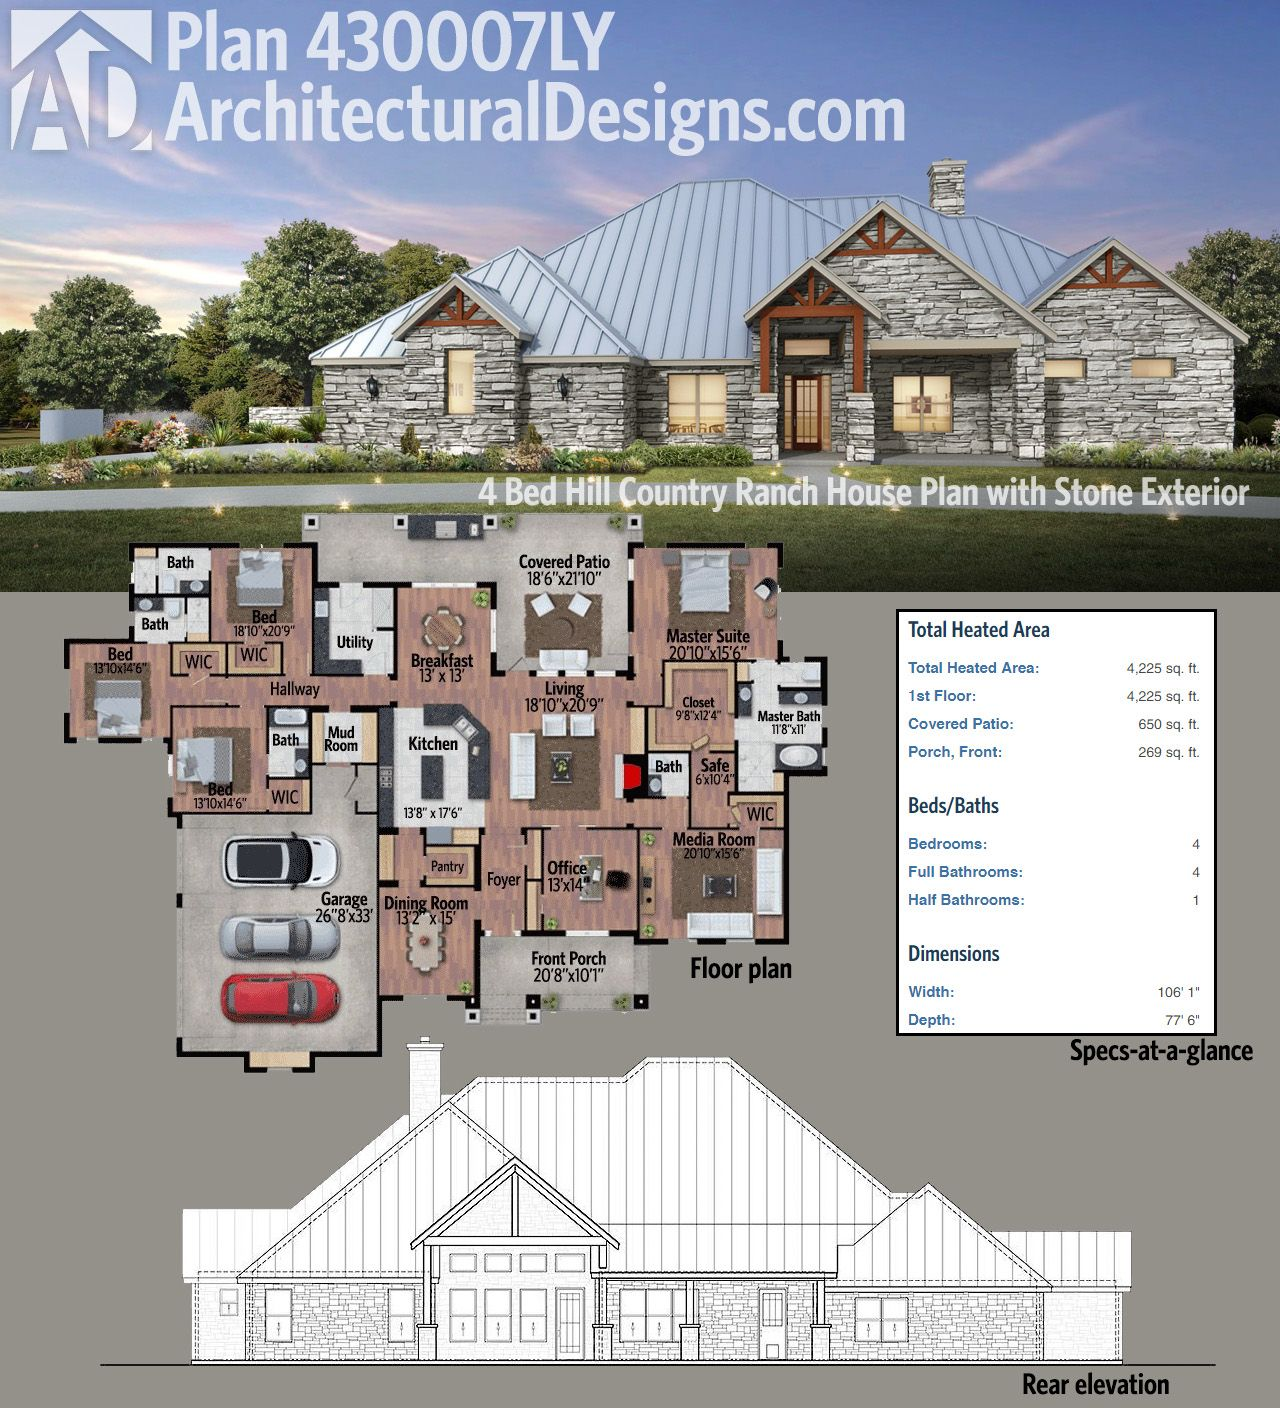 Plan 430007LY: 4 Bed Hill Country Ranch House Plan With